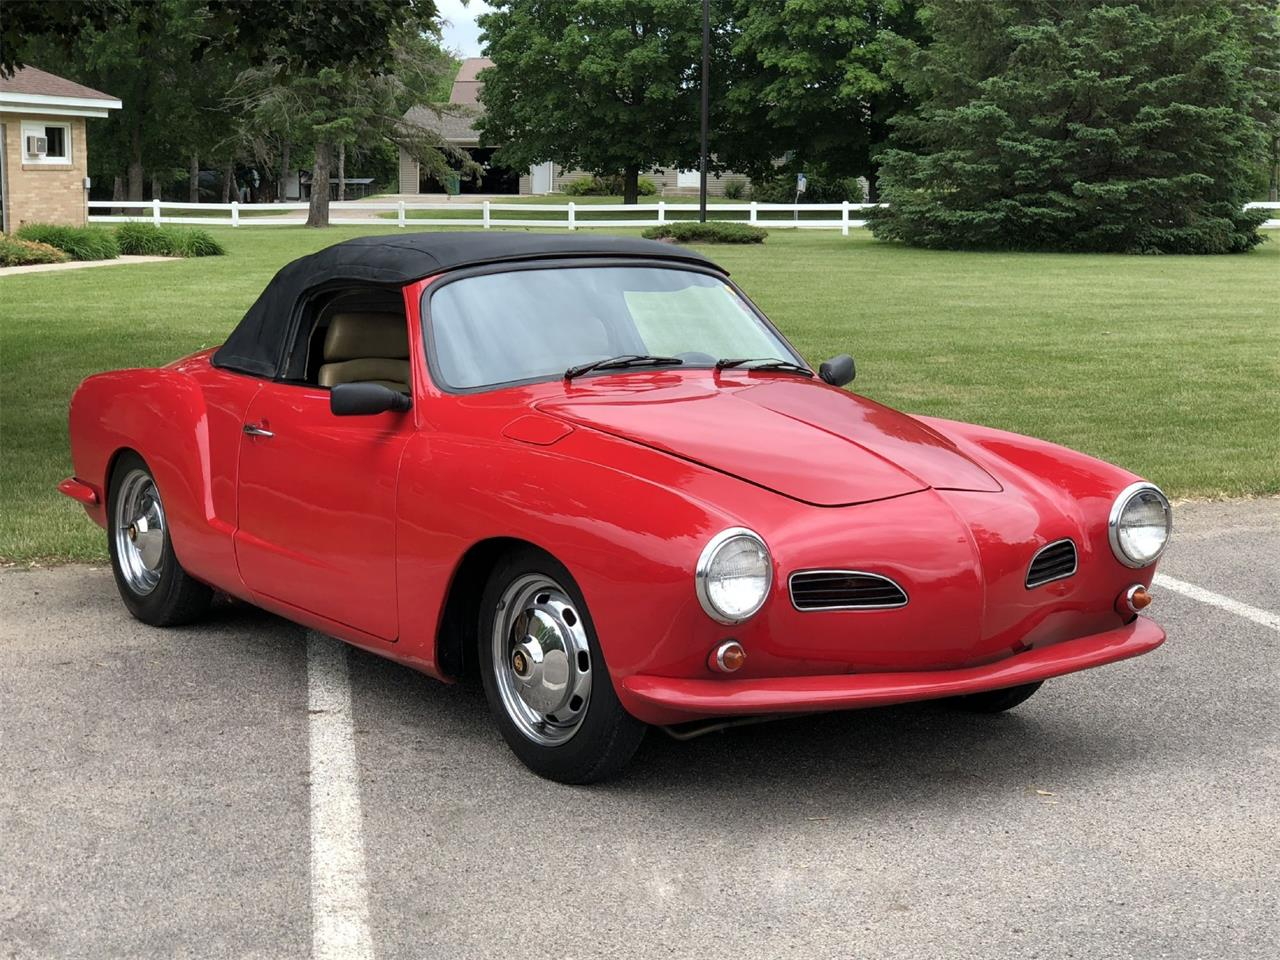 Large Picture of 1972 Volkswagen Karmann Ghia - $14,950.00 - NM7V